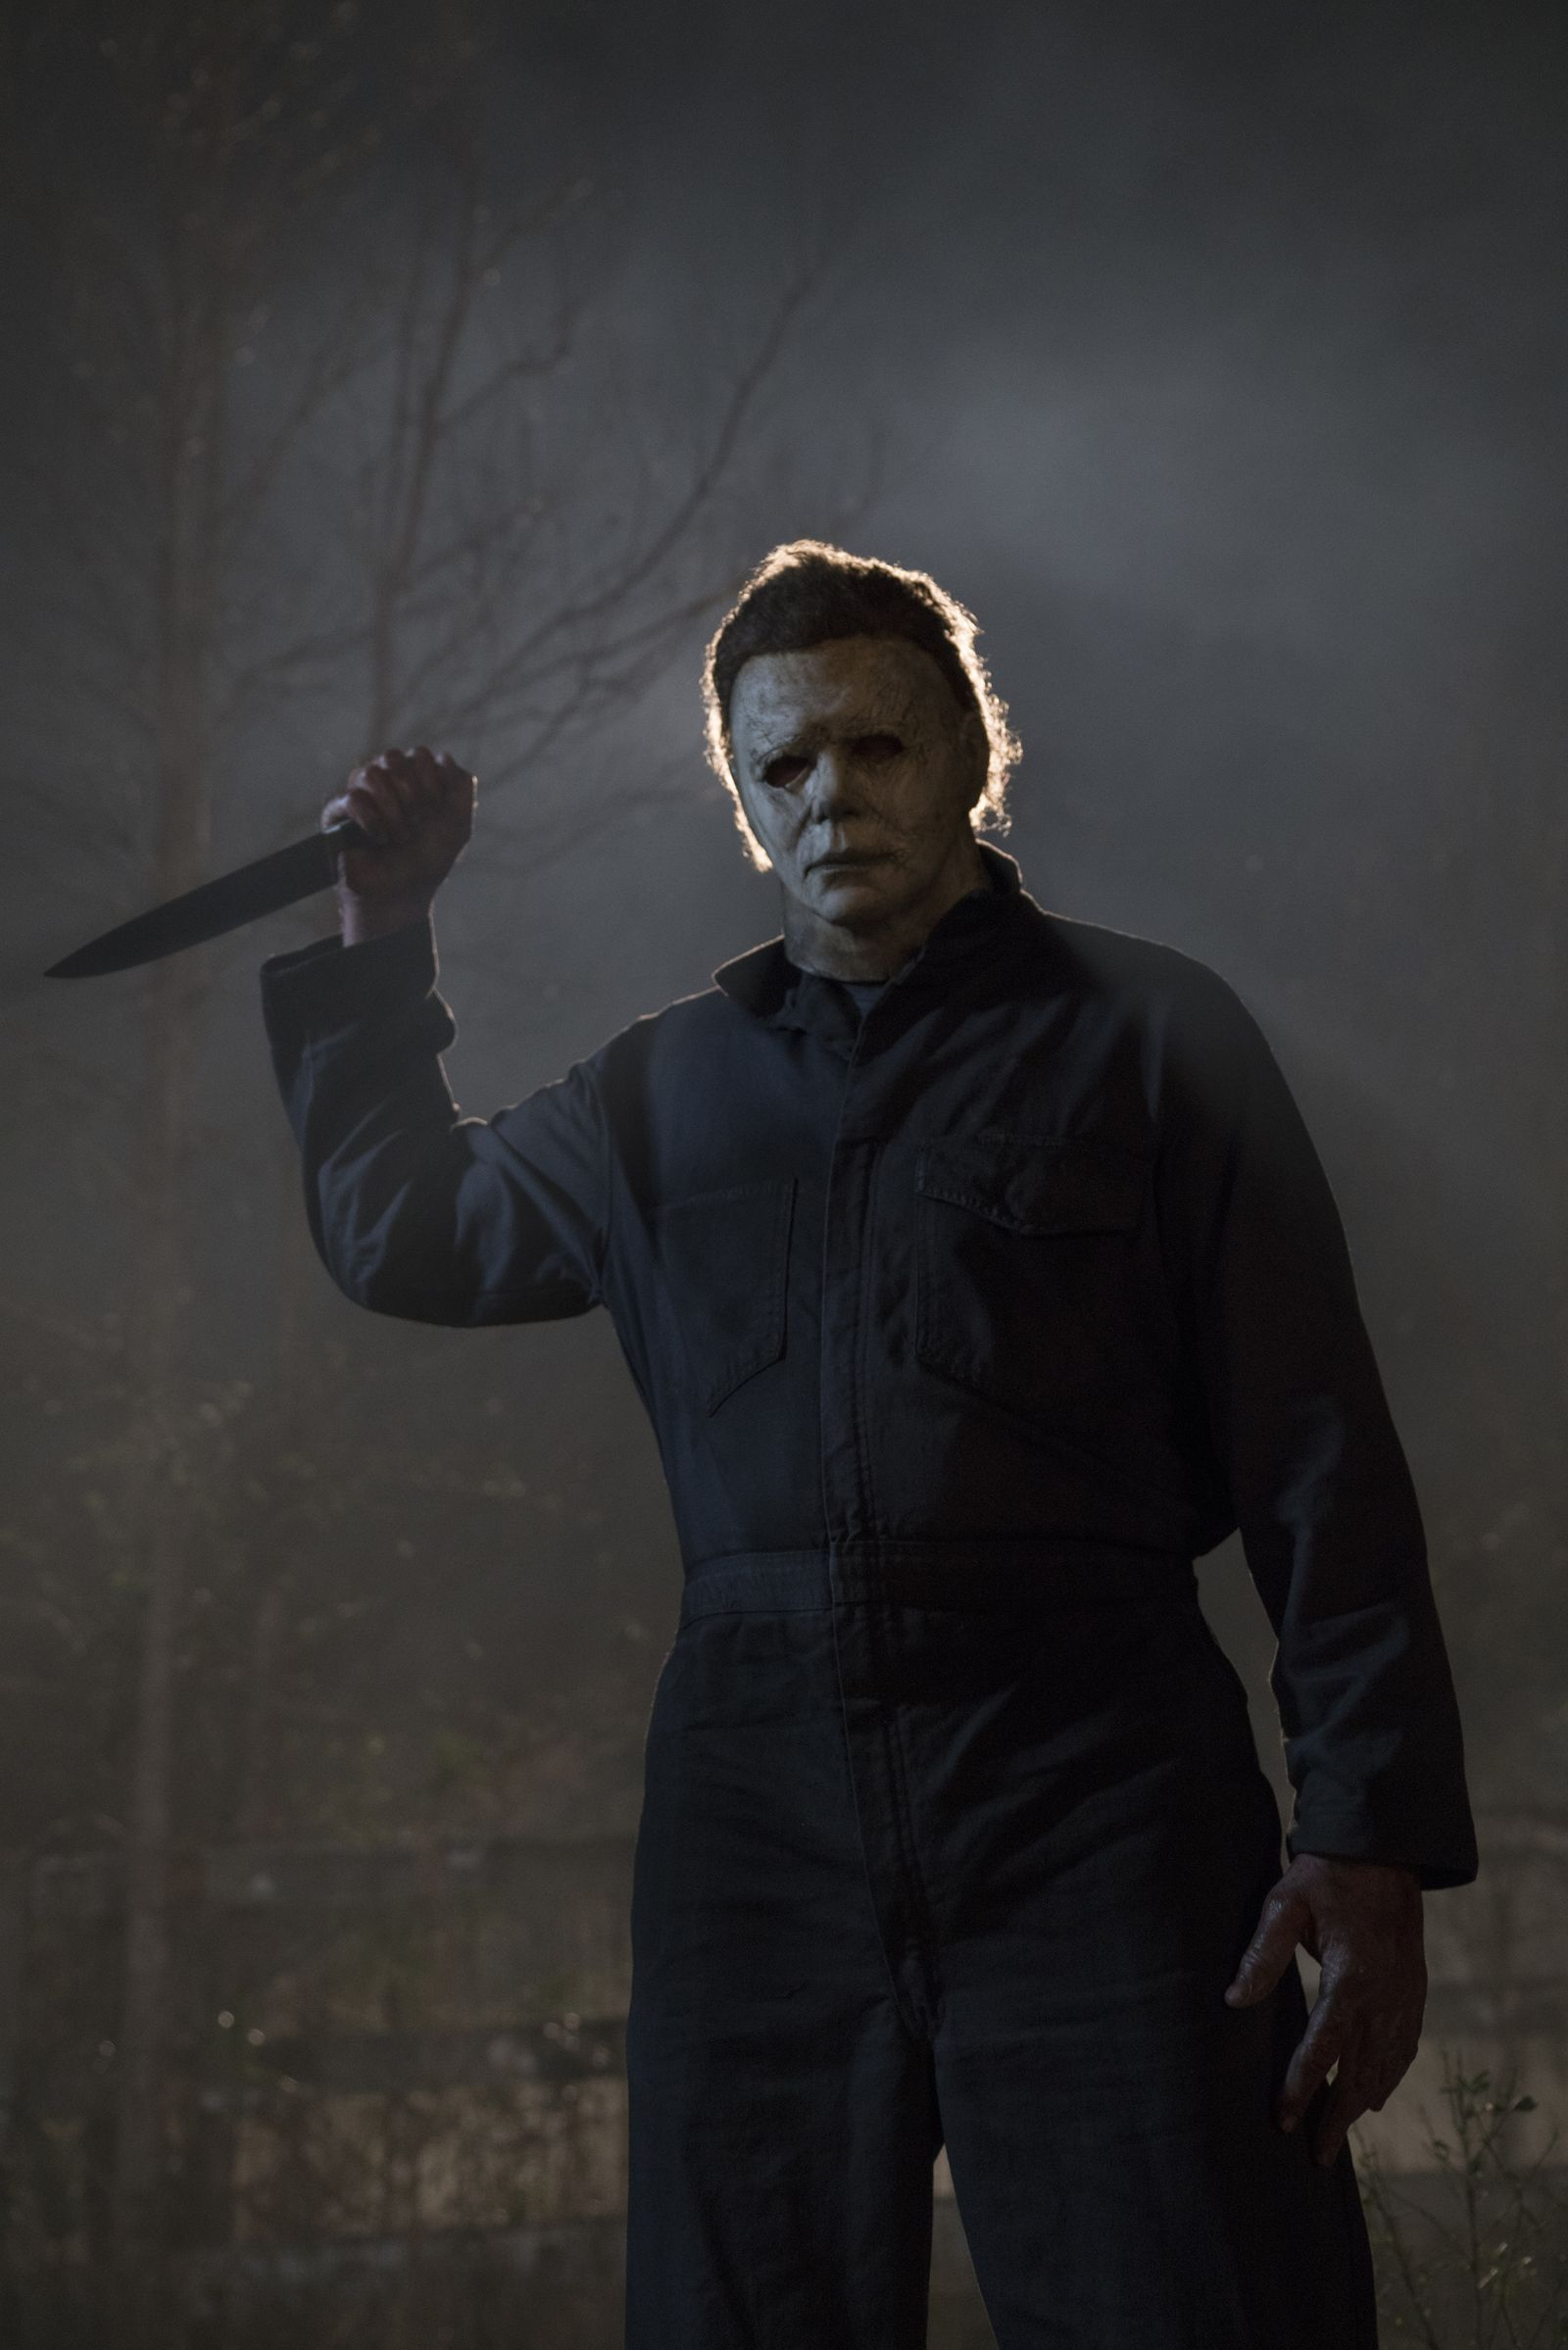 Anything Happen At The End Of The New Halloween 2020 What Actually Happens to Michael Myers at the End of the New